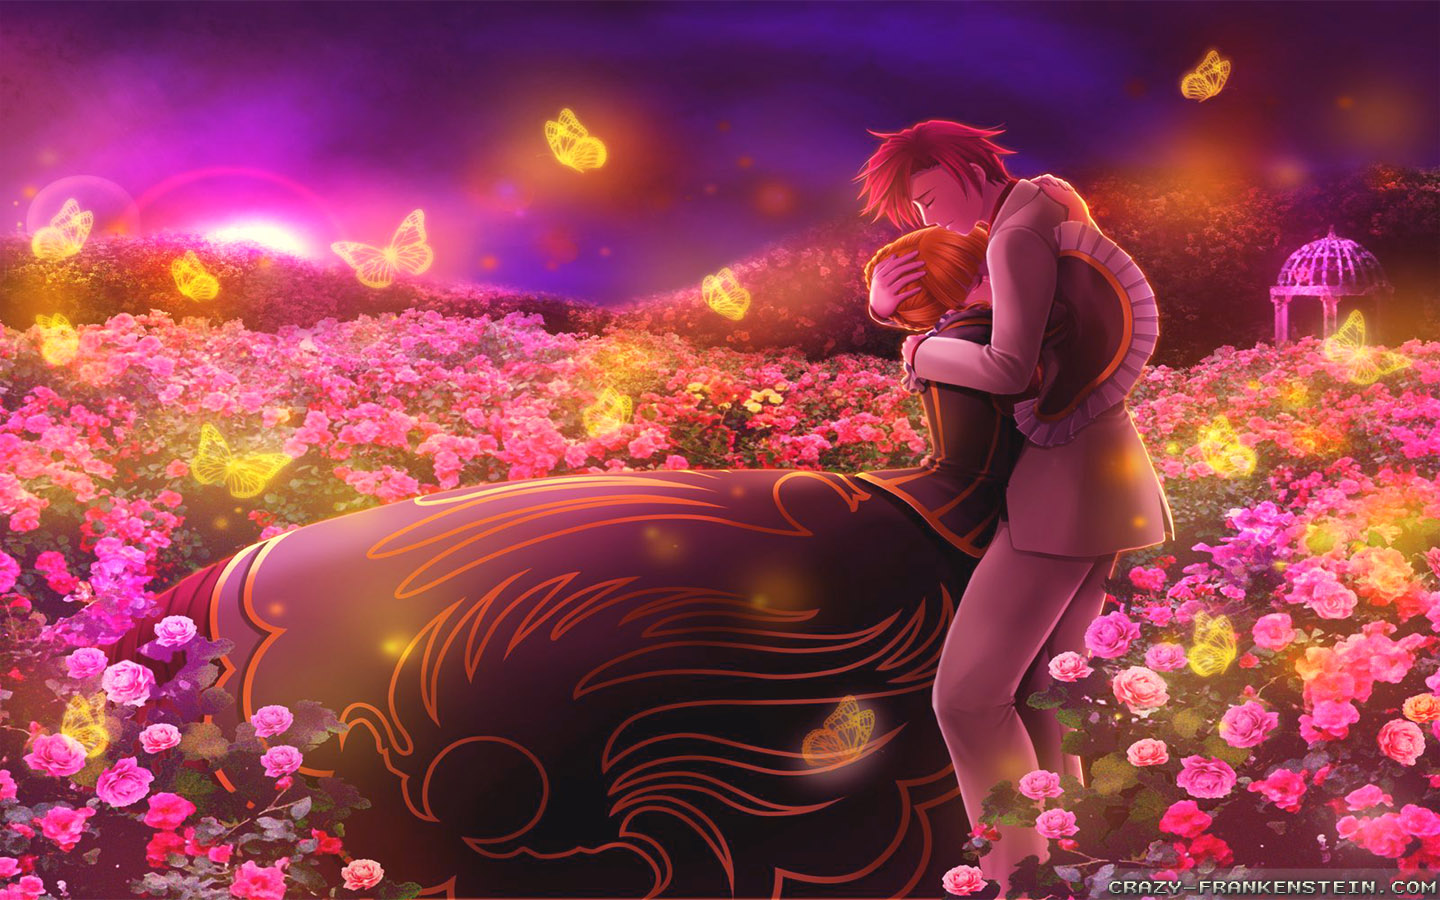 Beautiful Love Images For Him Pictures 5 HD Wallpapers